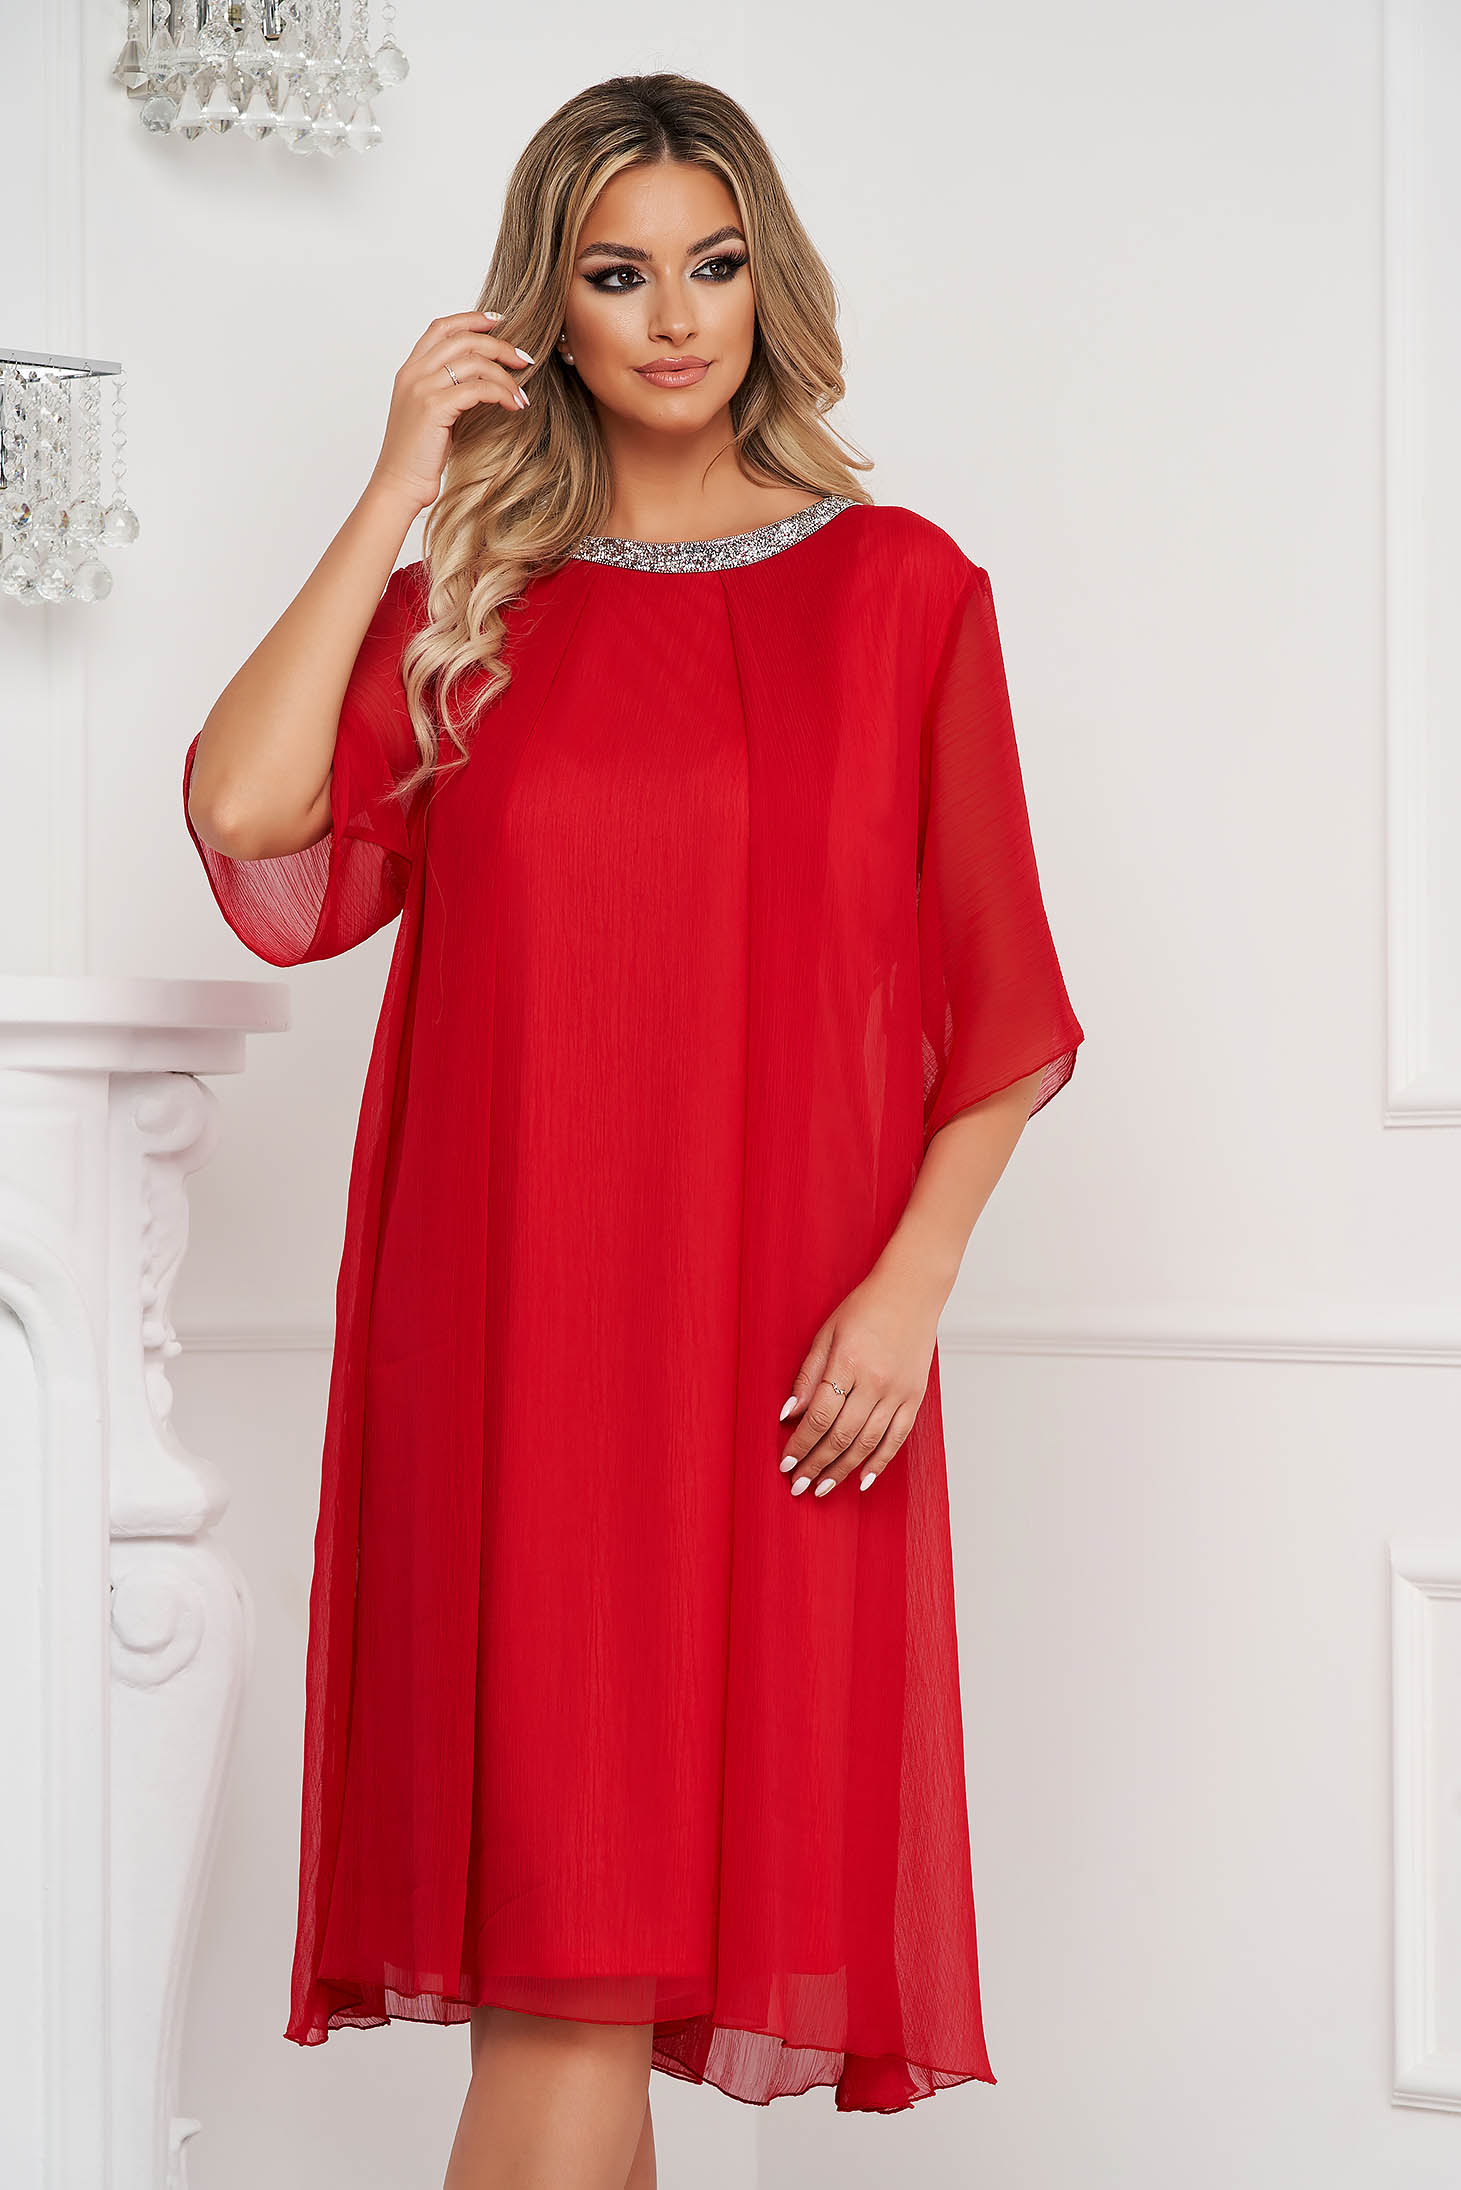 Red dress loose fit midi with embellished accessories large sleeves wrinkled material